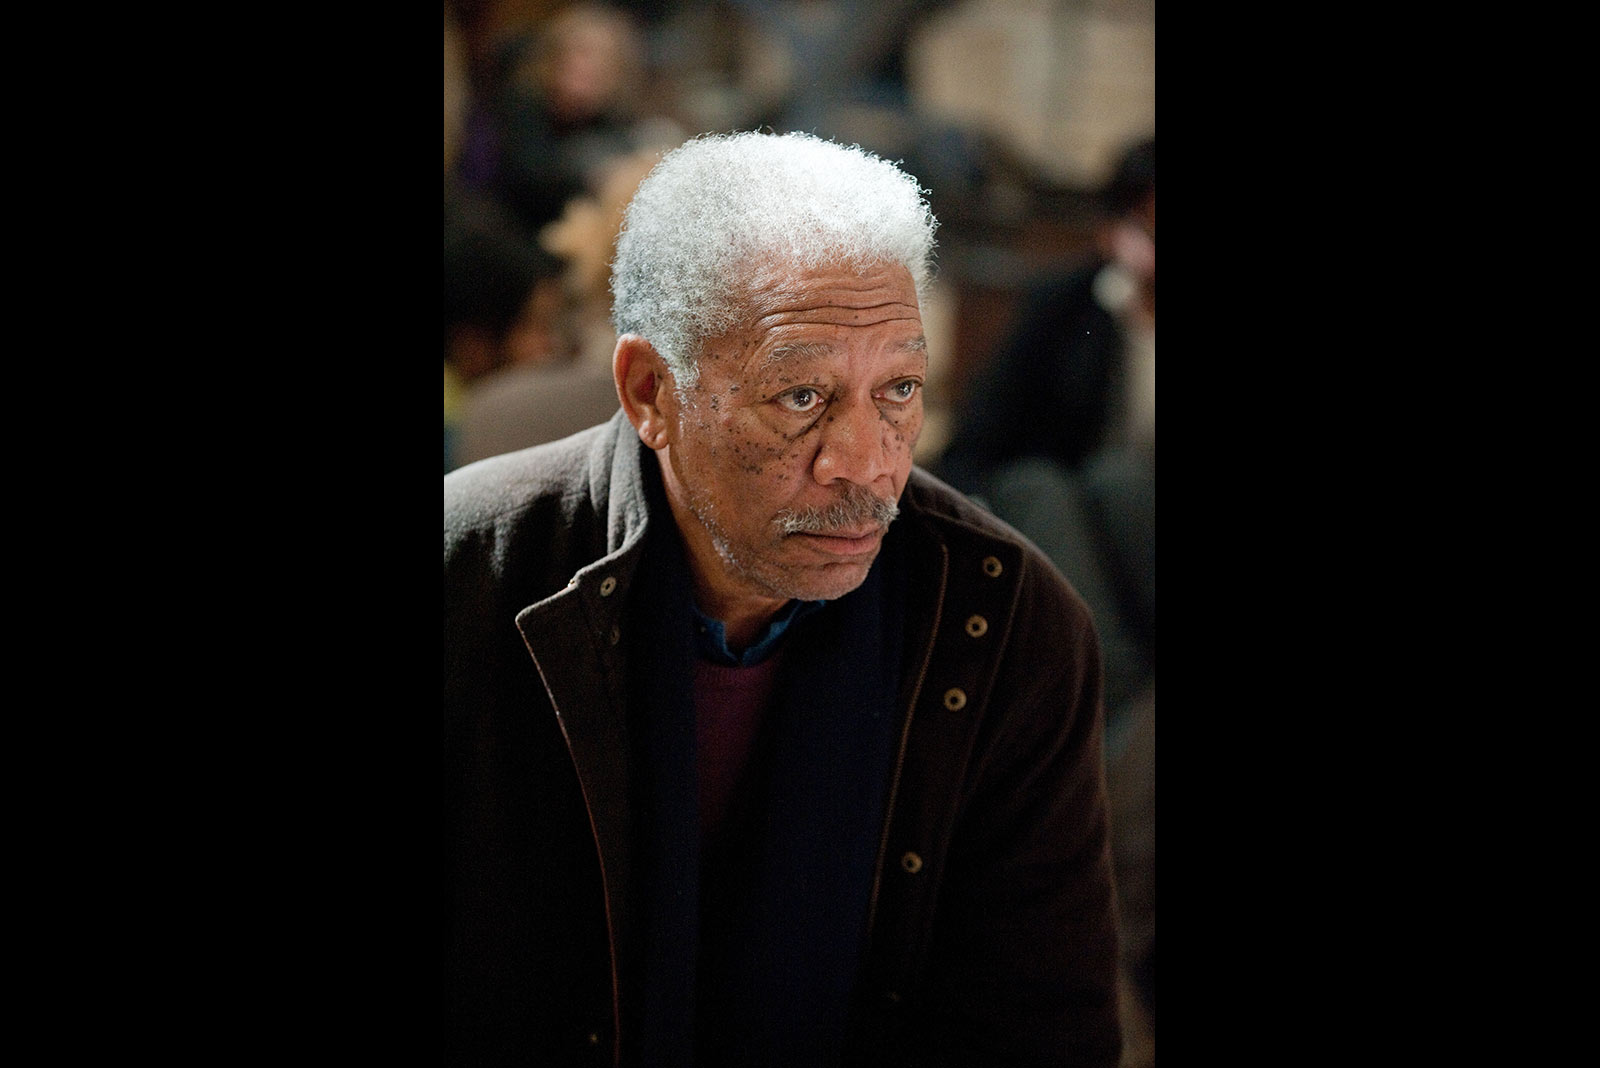 Morgan Freeman owns the screen once again as Lucius Fox